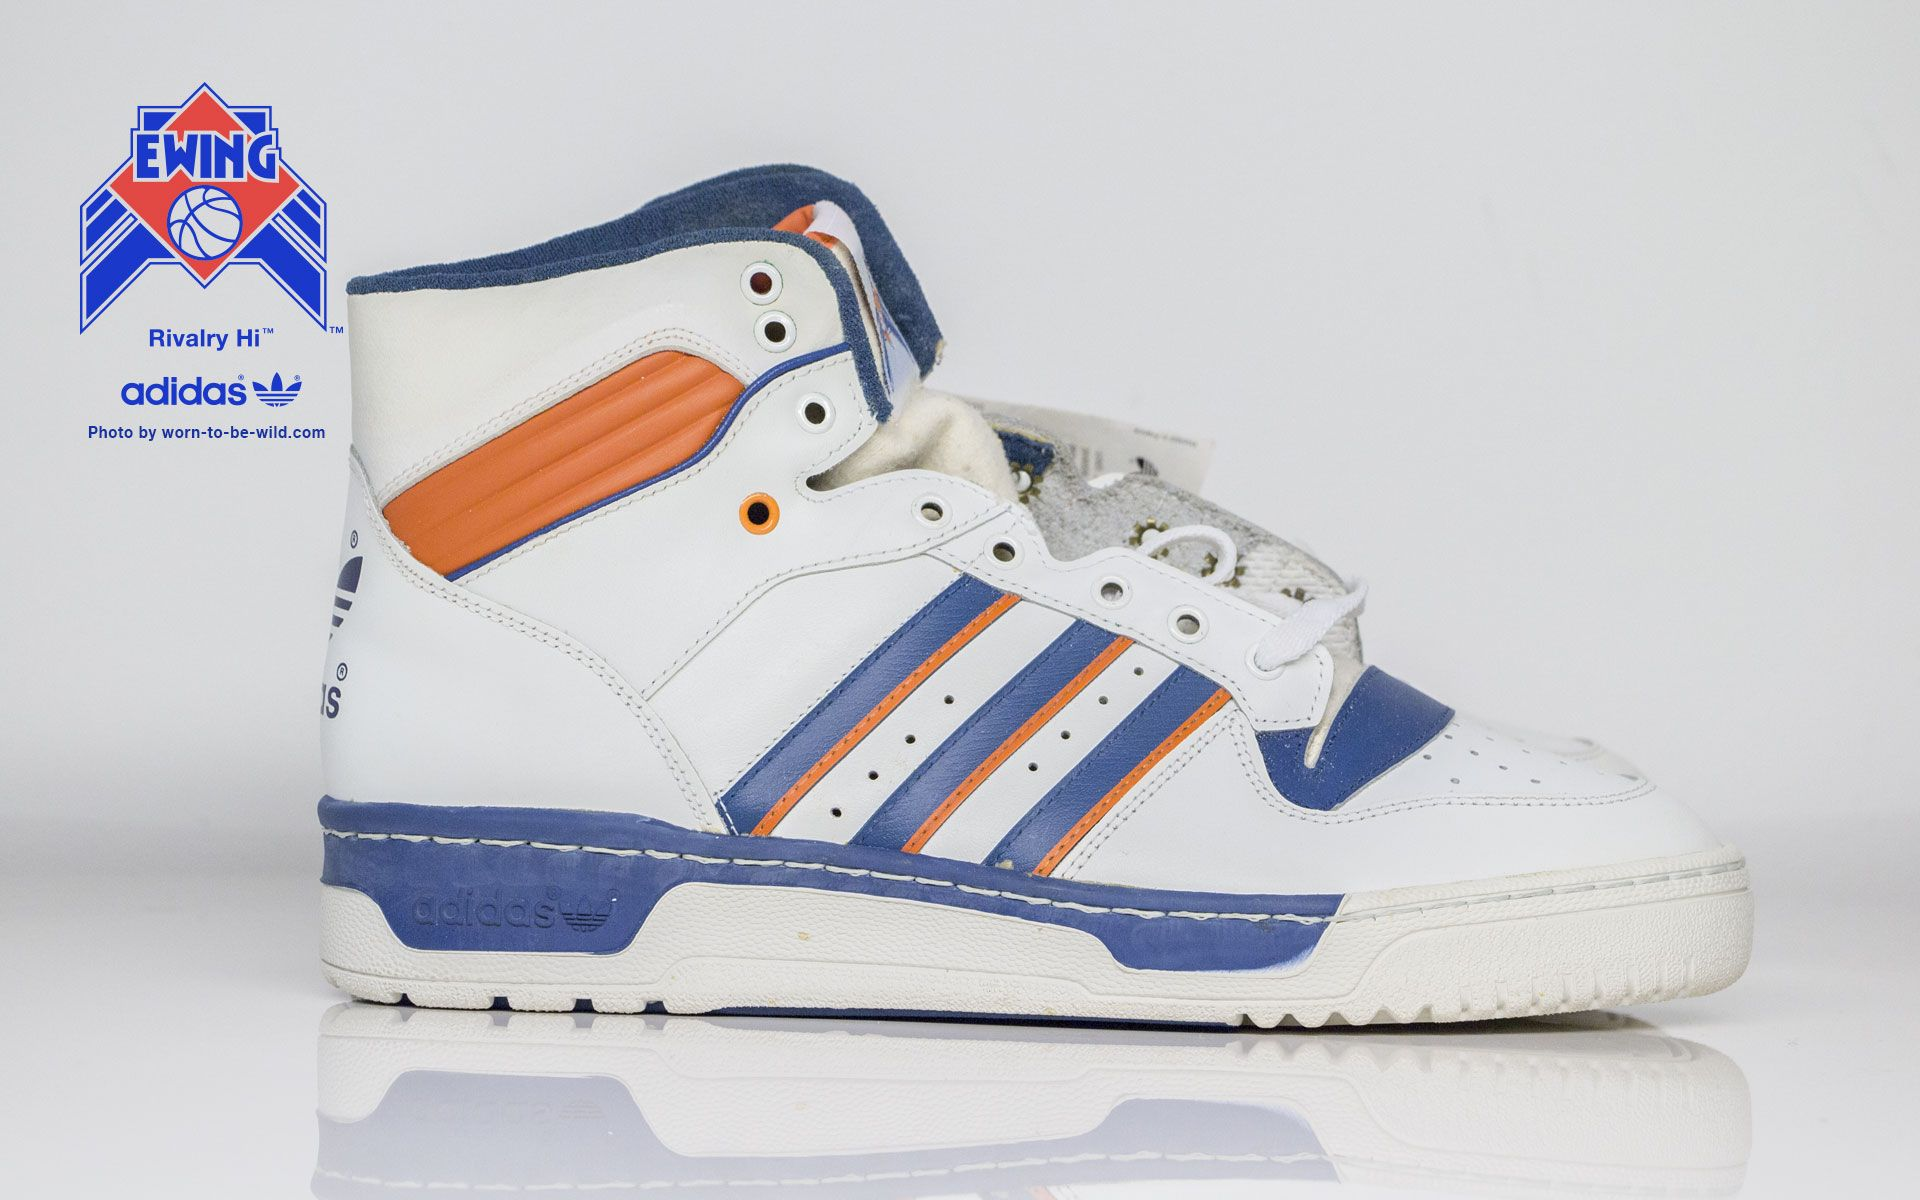 sports shoes be25a 54dc4 WORN TO BE WILD » Adidas Rivalry Hi Ewing New York Knicks